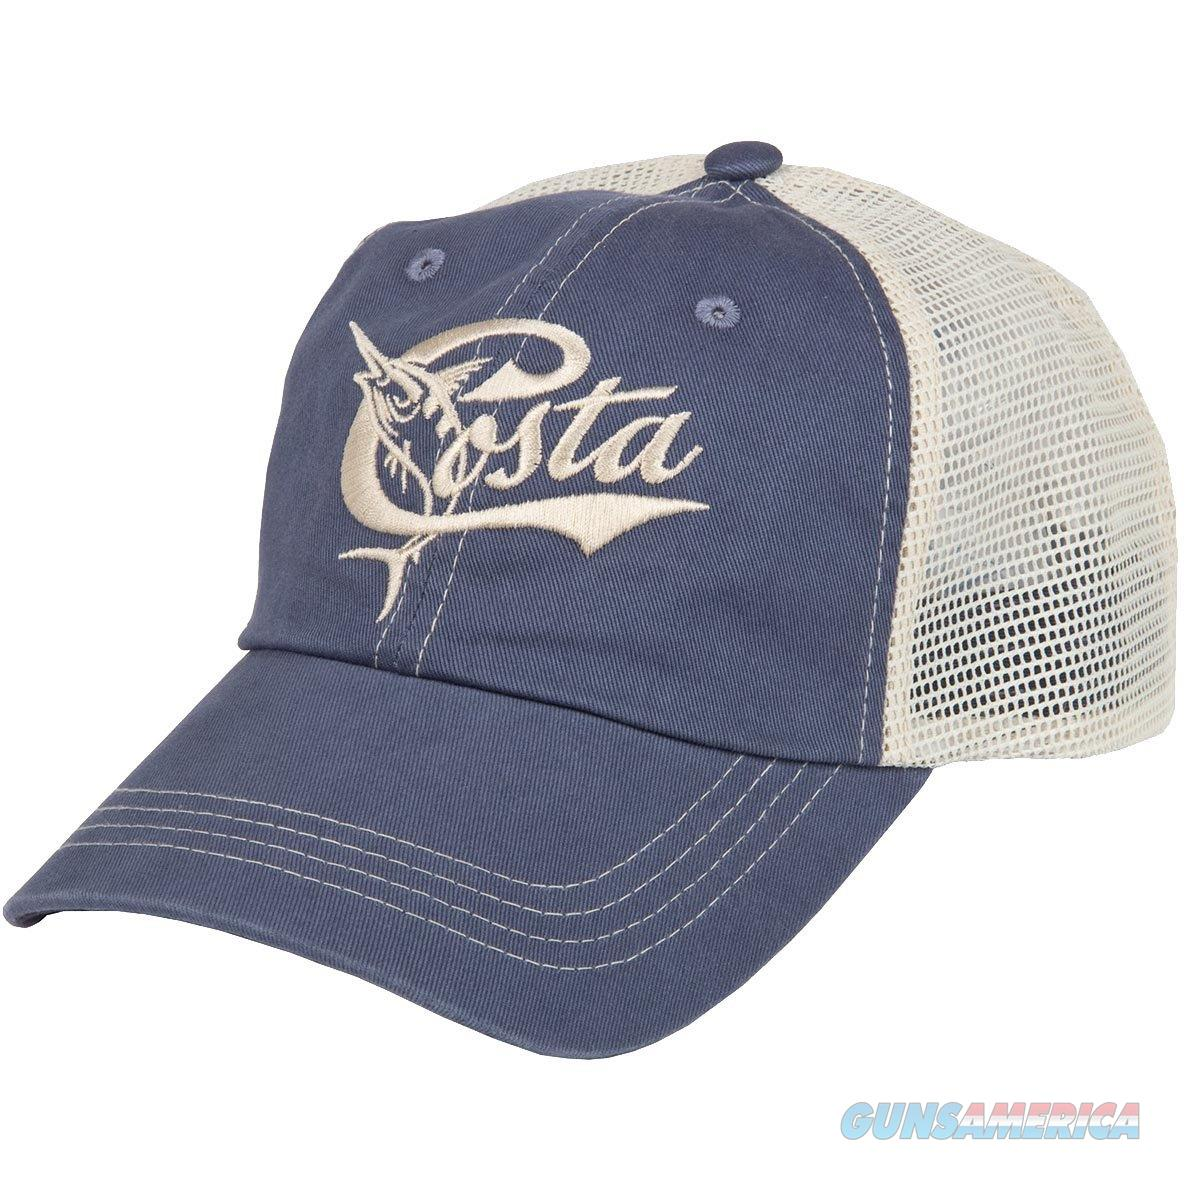 Costa Retro Trucker Ball Cap Slate Blue  Non-Guns > Hunting Clothing and Equipment > Clothing > Hats